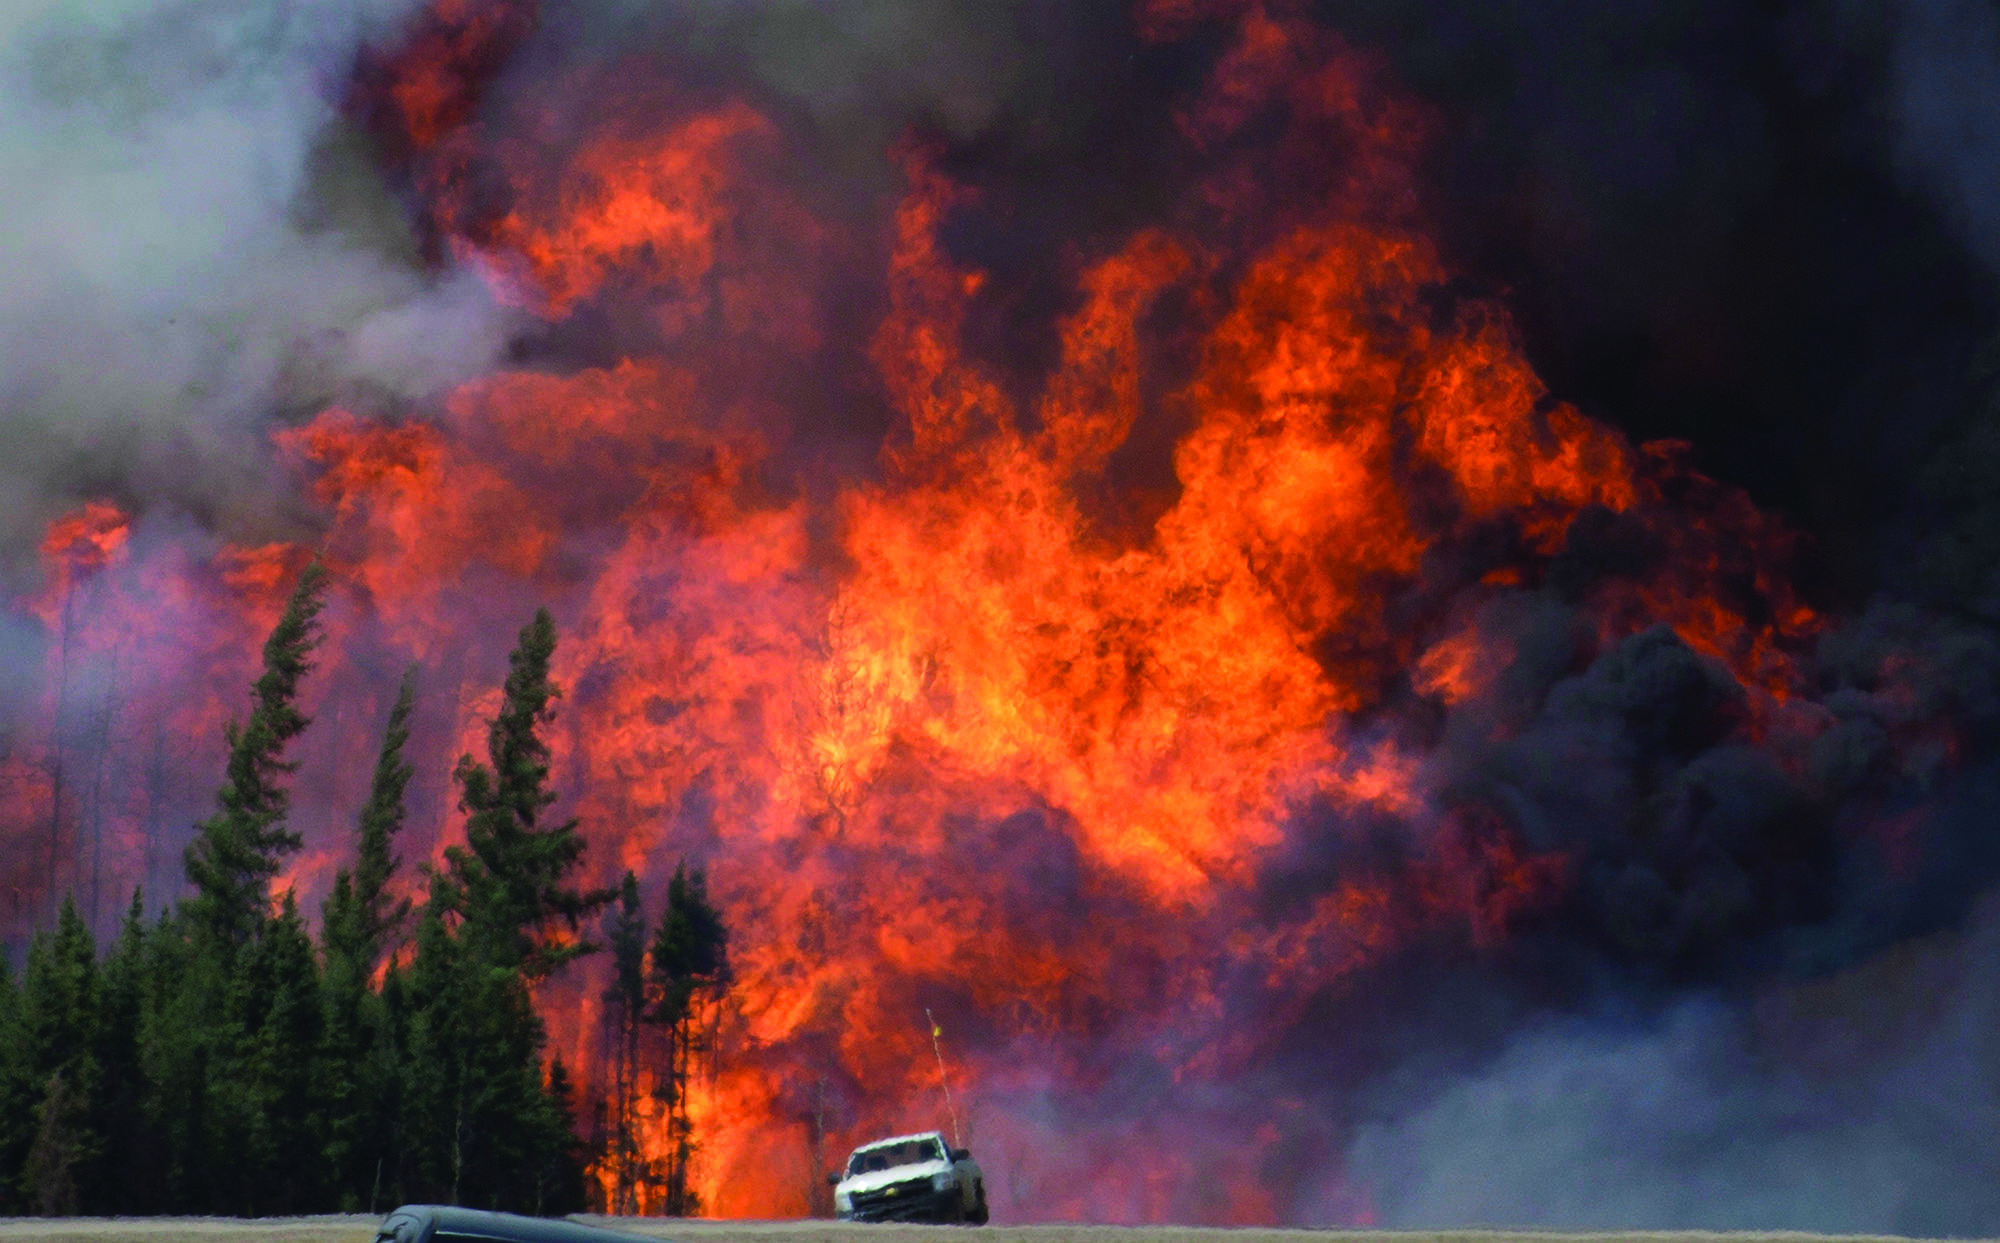 A giant fireball is seen as a wild fire rips through the forest 16 km south of Fort McMurray, Alberta on highway 63 on May 7, 2016. THE CANADIAN PRESS/Jonathan Hayward